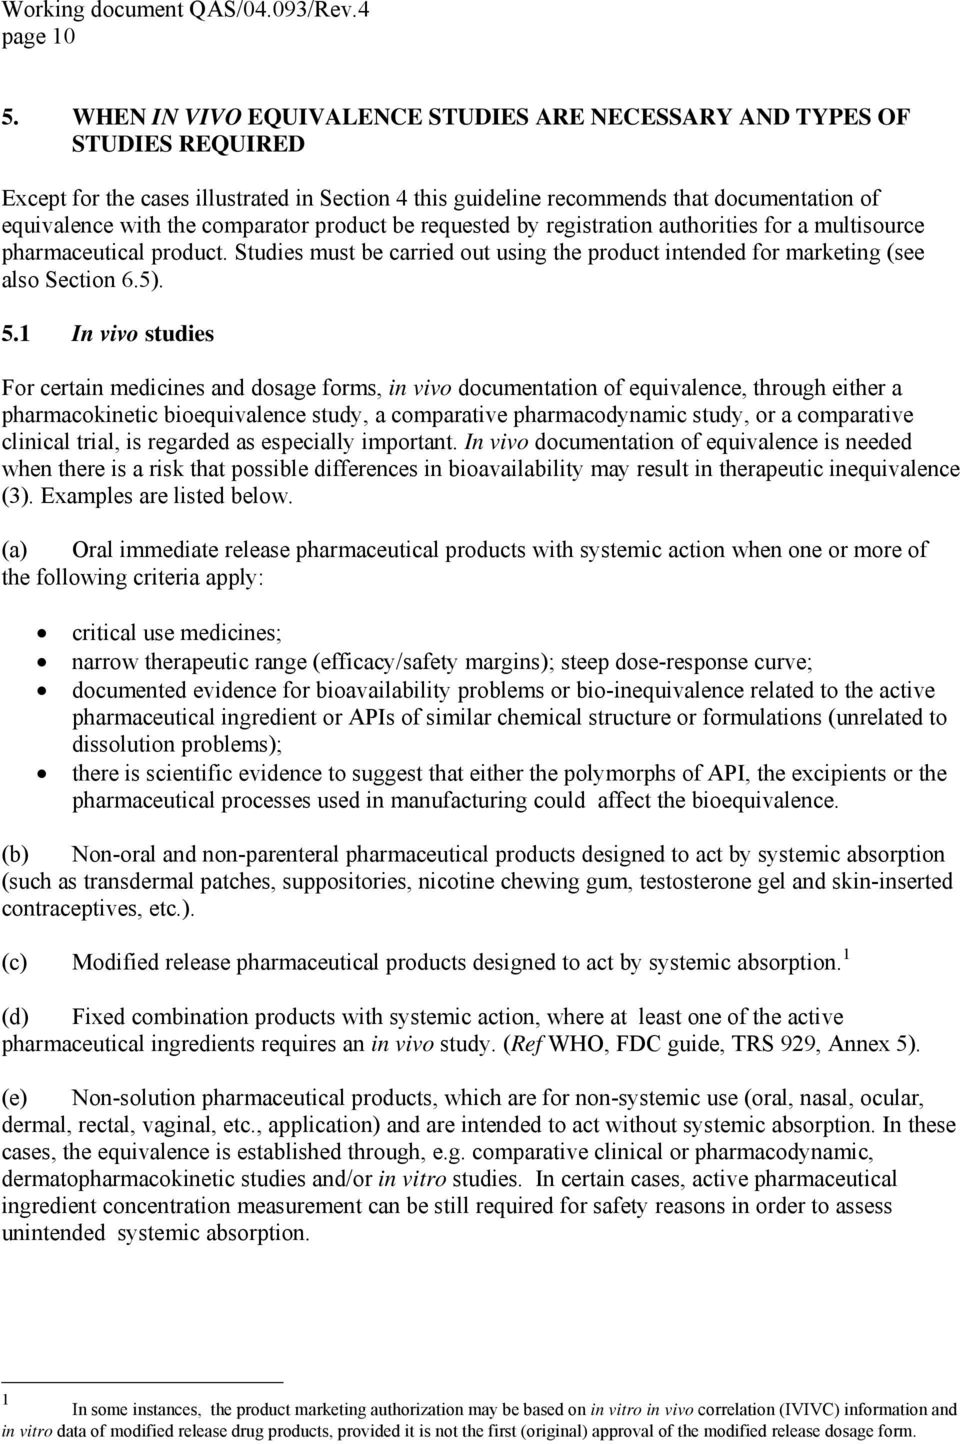 comparator product be requested by registration authorities for a multisource pharmaceutical product. Studies must be carried out using the product intended for marketing (see also Section 6.5). 5.